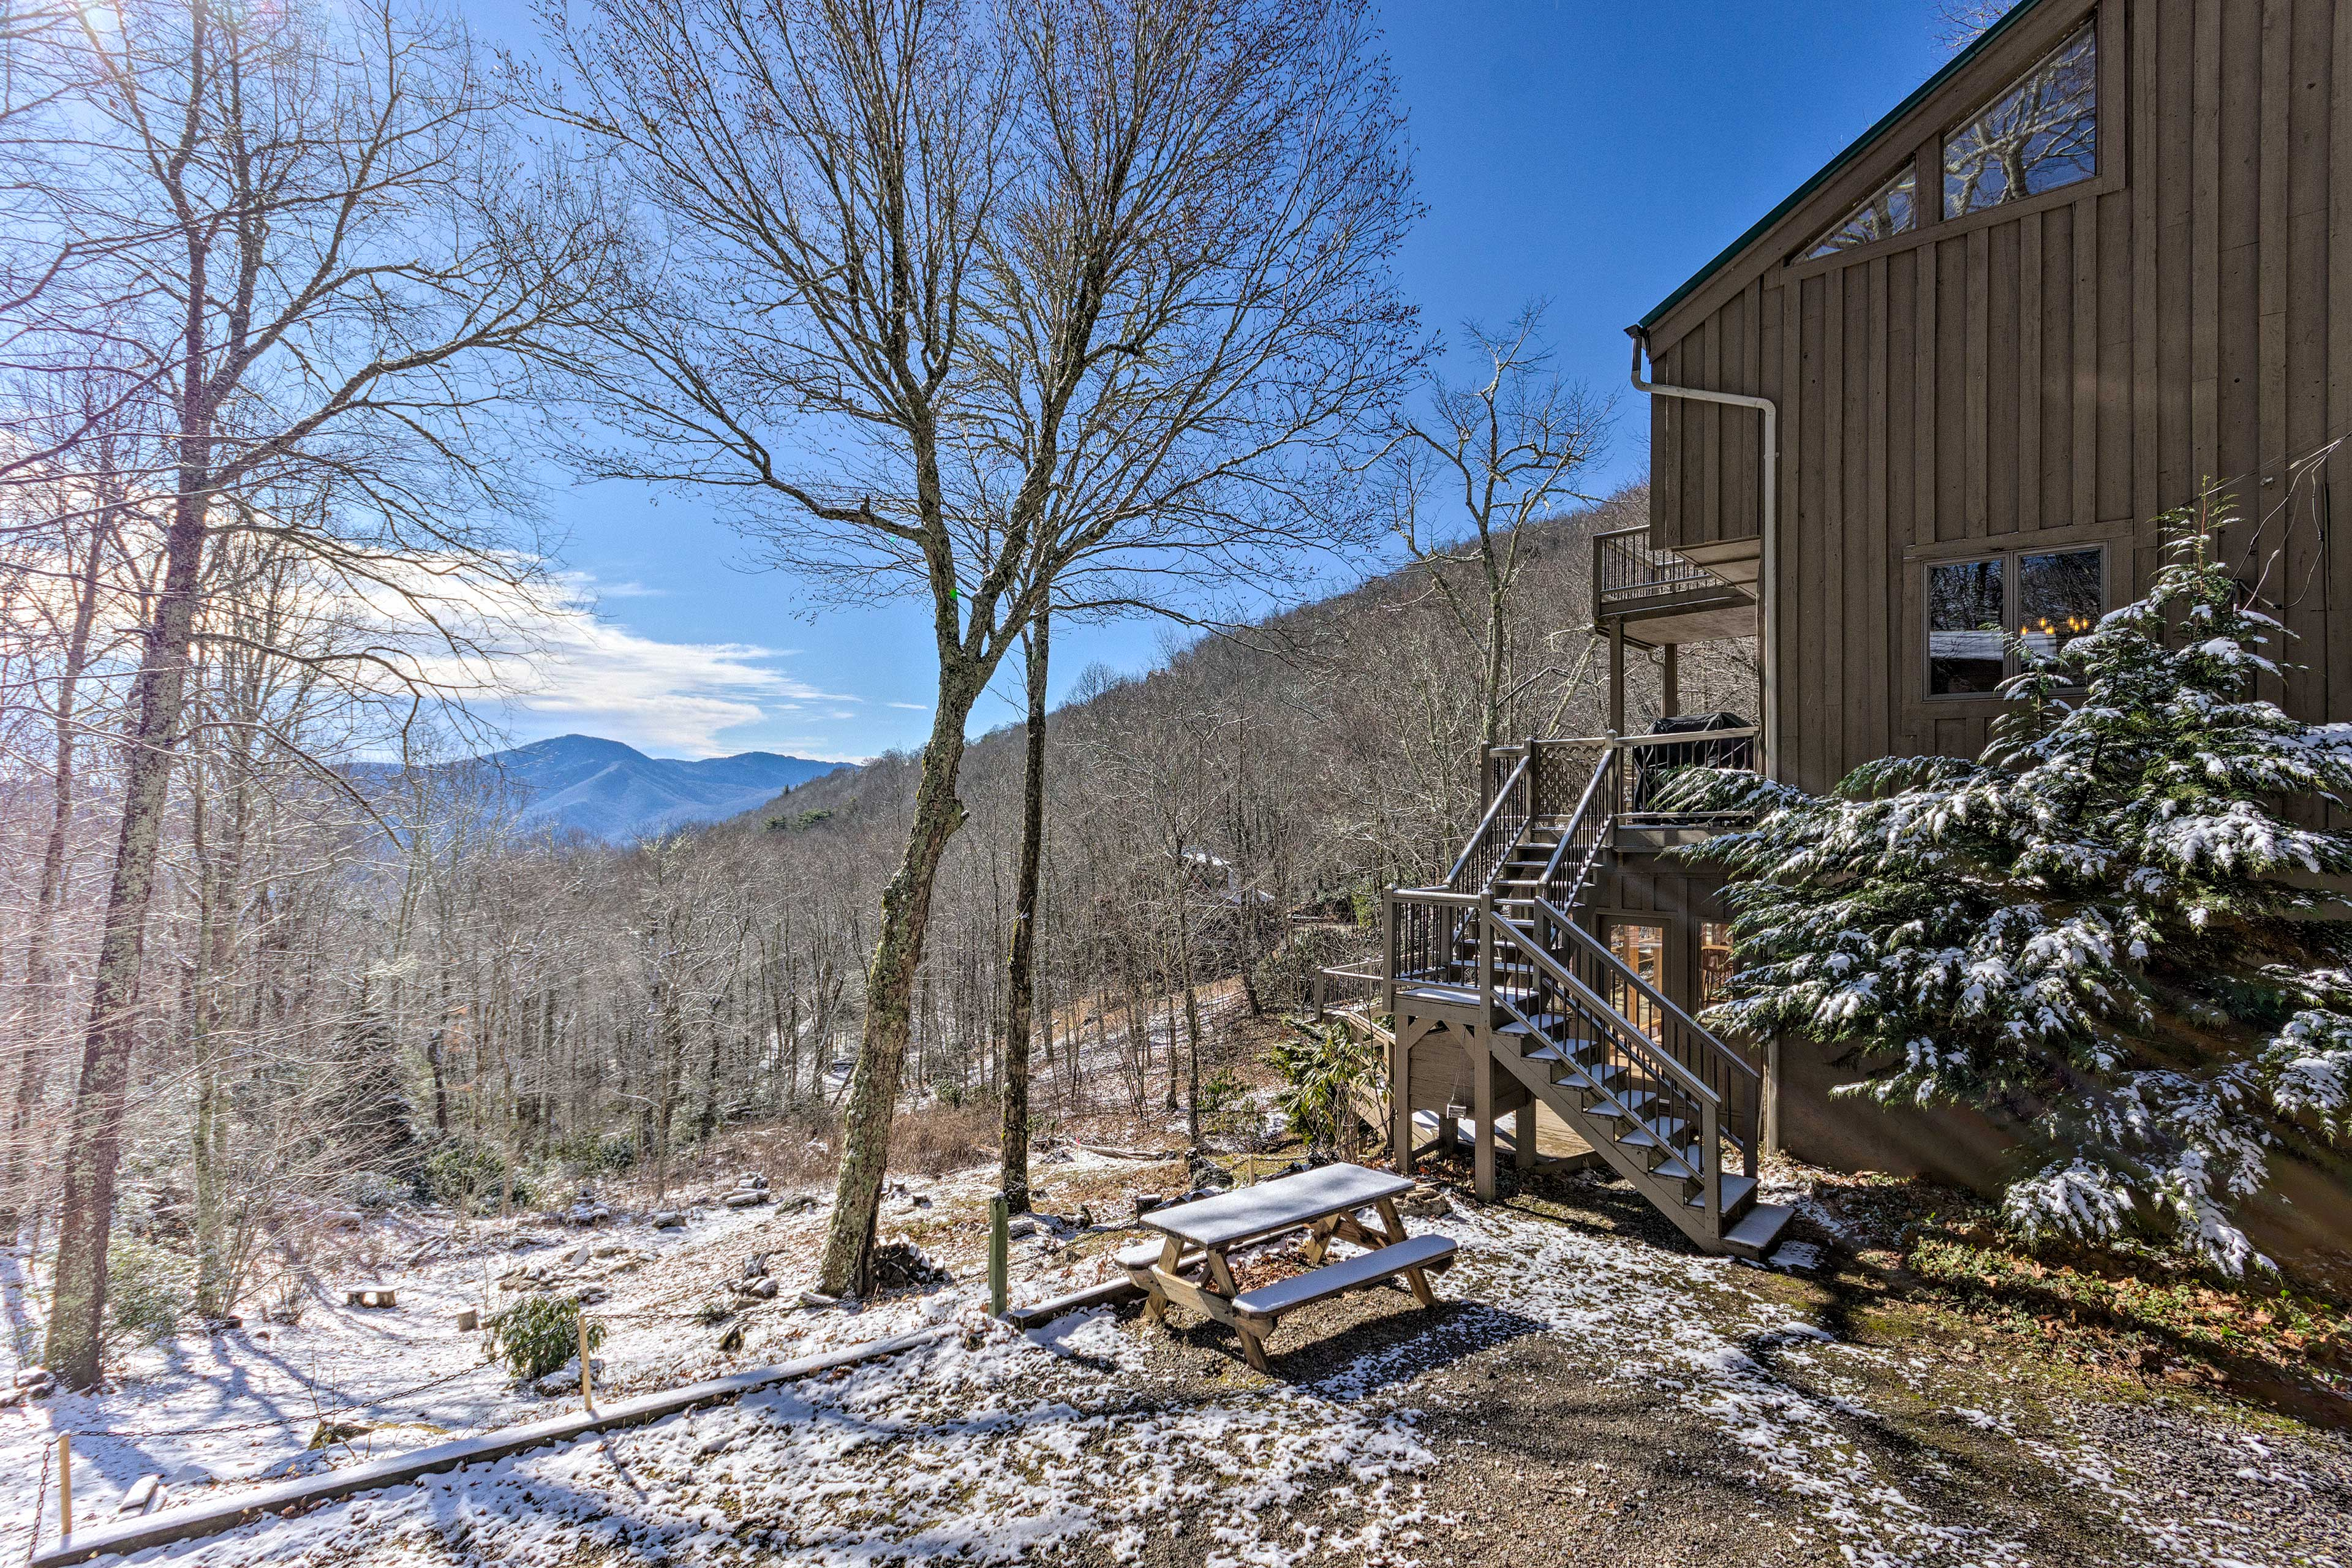 The vacation rental is just a couple minute's drive from Maggie Valley.